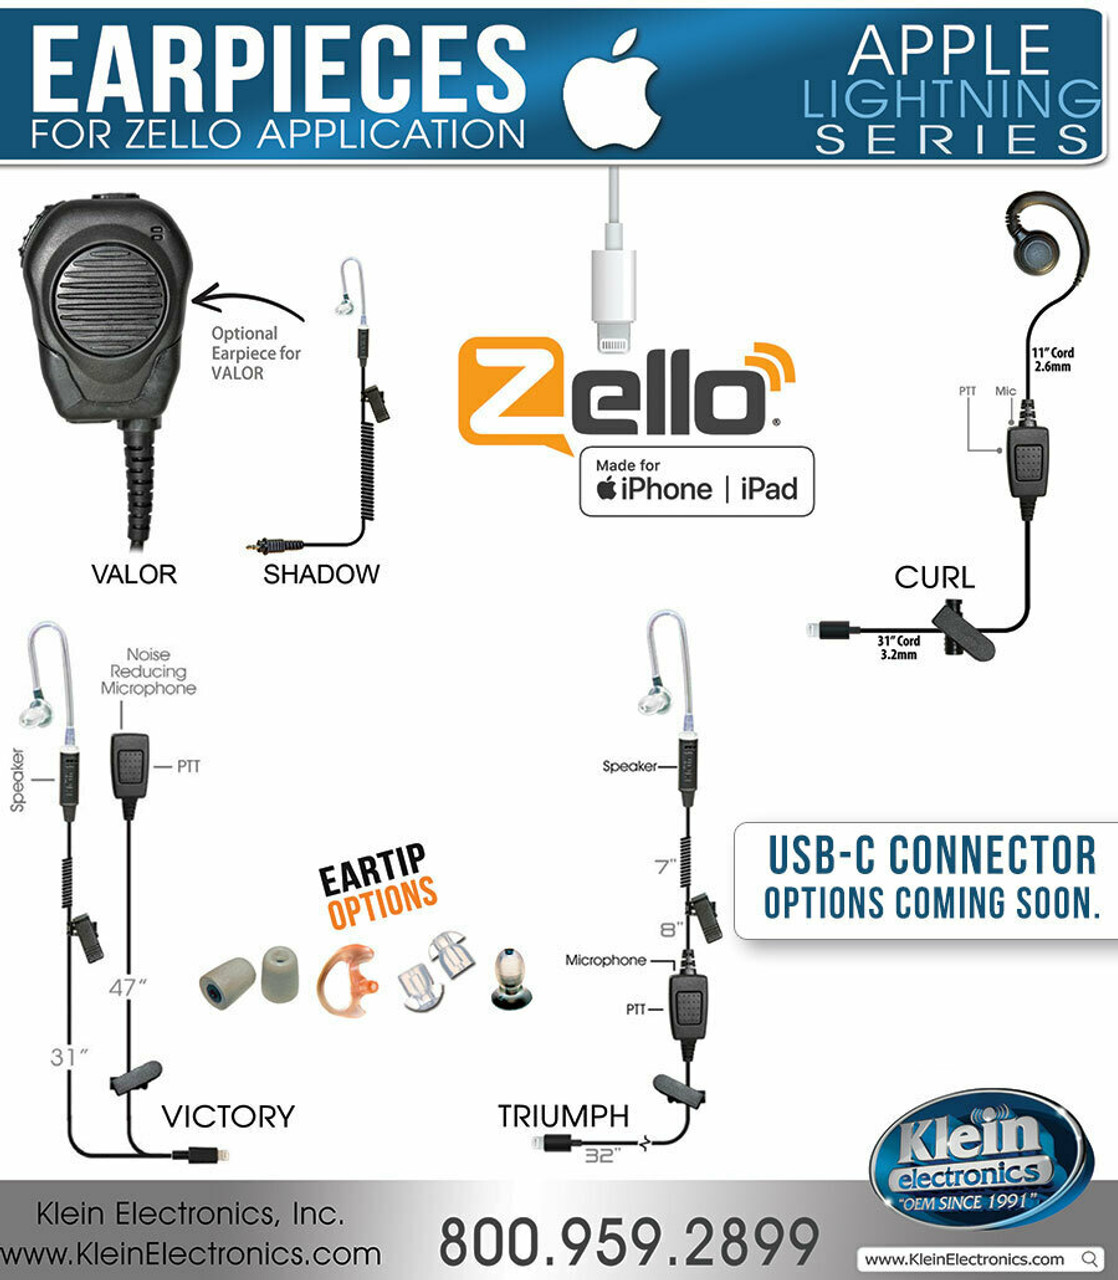 VICTORY 2-Wire Earpiece (Lightning iOS) For Zello